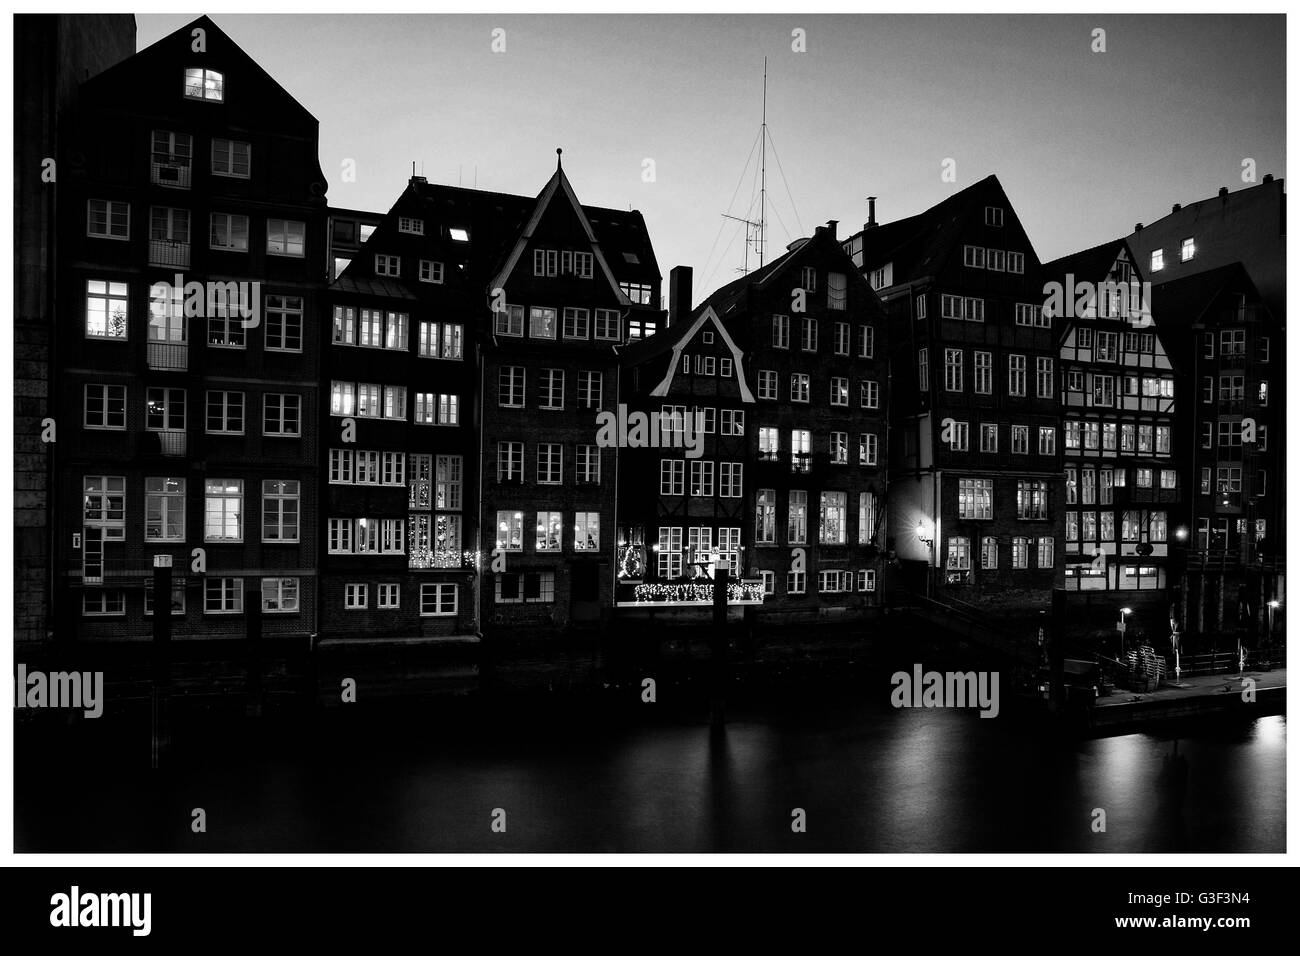 View on historic half timber houses of Deichstrasse in Hamburg, Germany - Stock Image